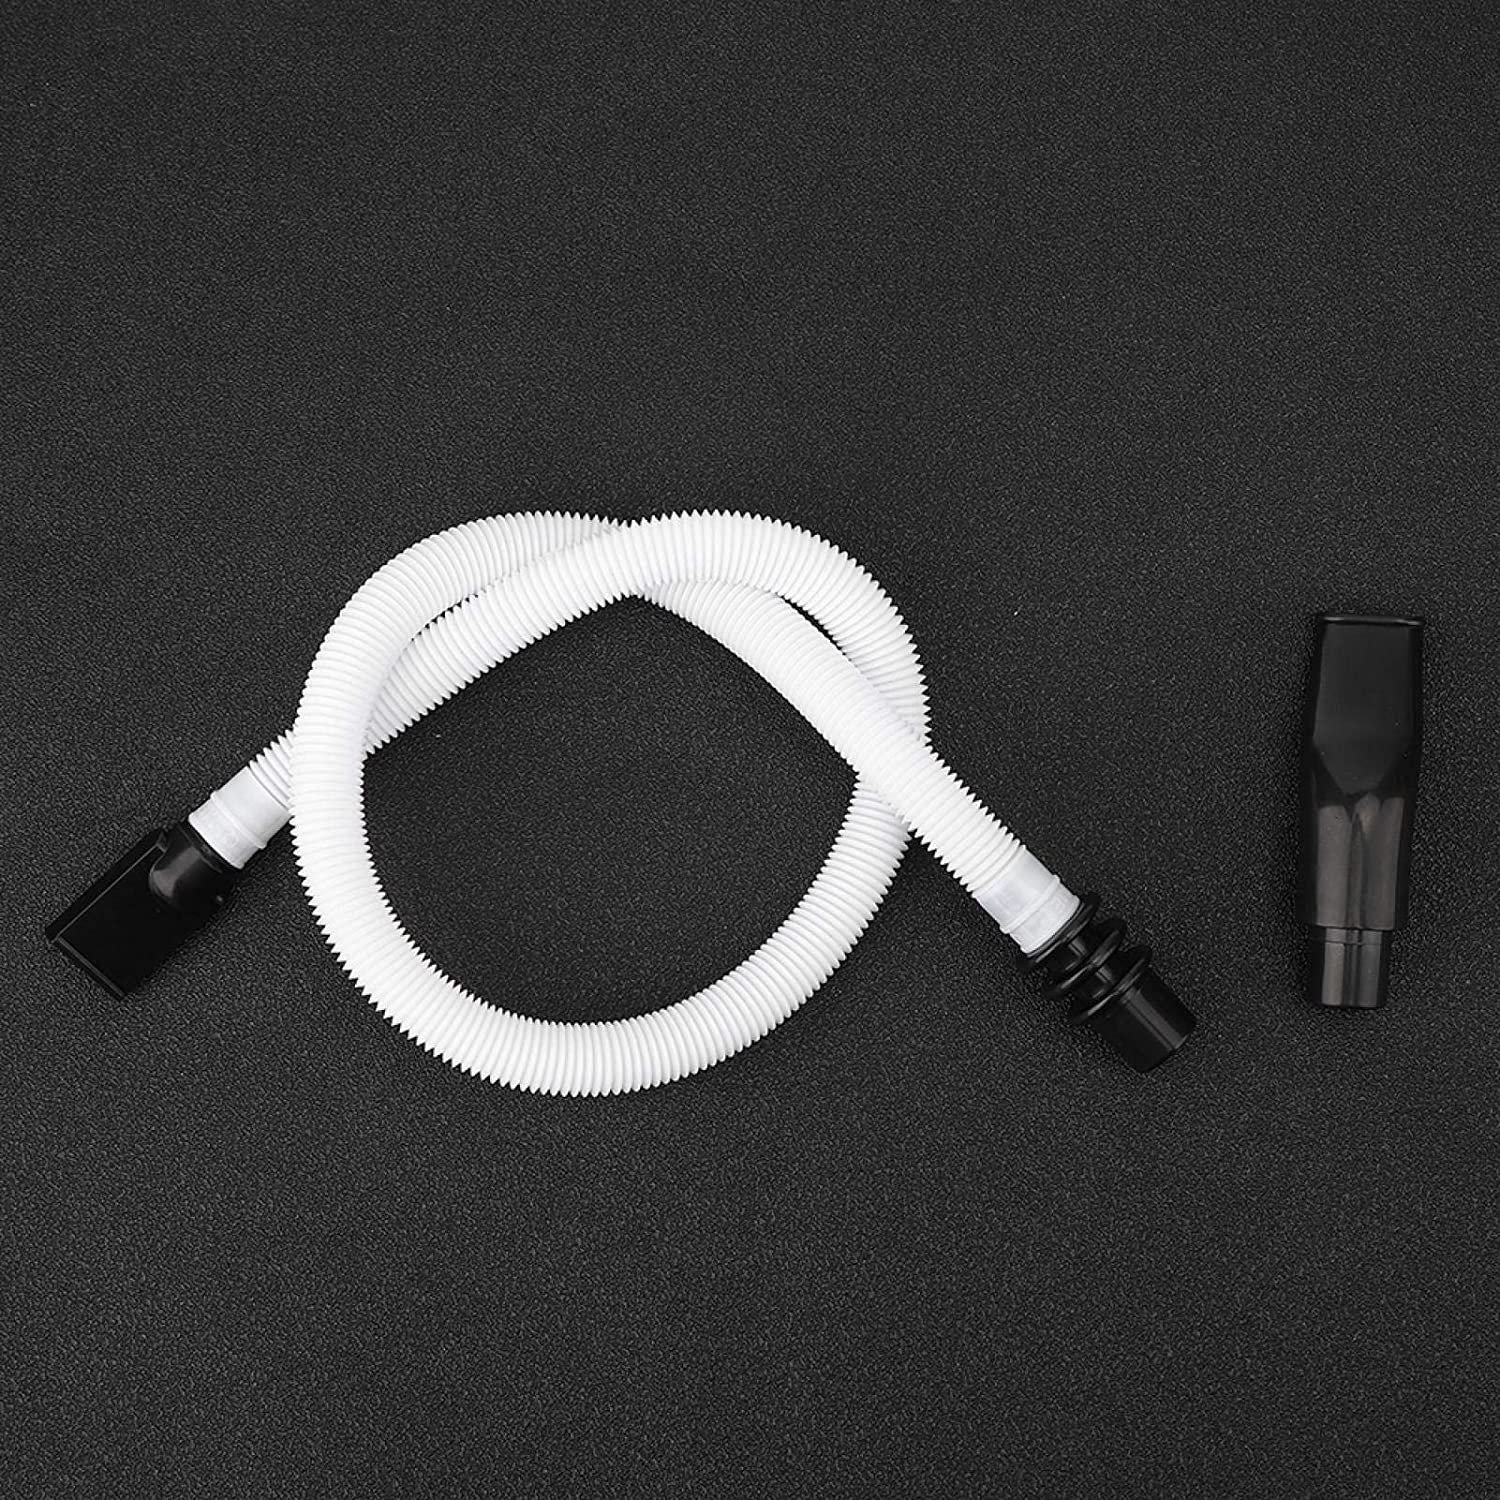 Environmental Melodica Tube For Beginners Our price shop OFFers the best service